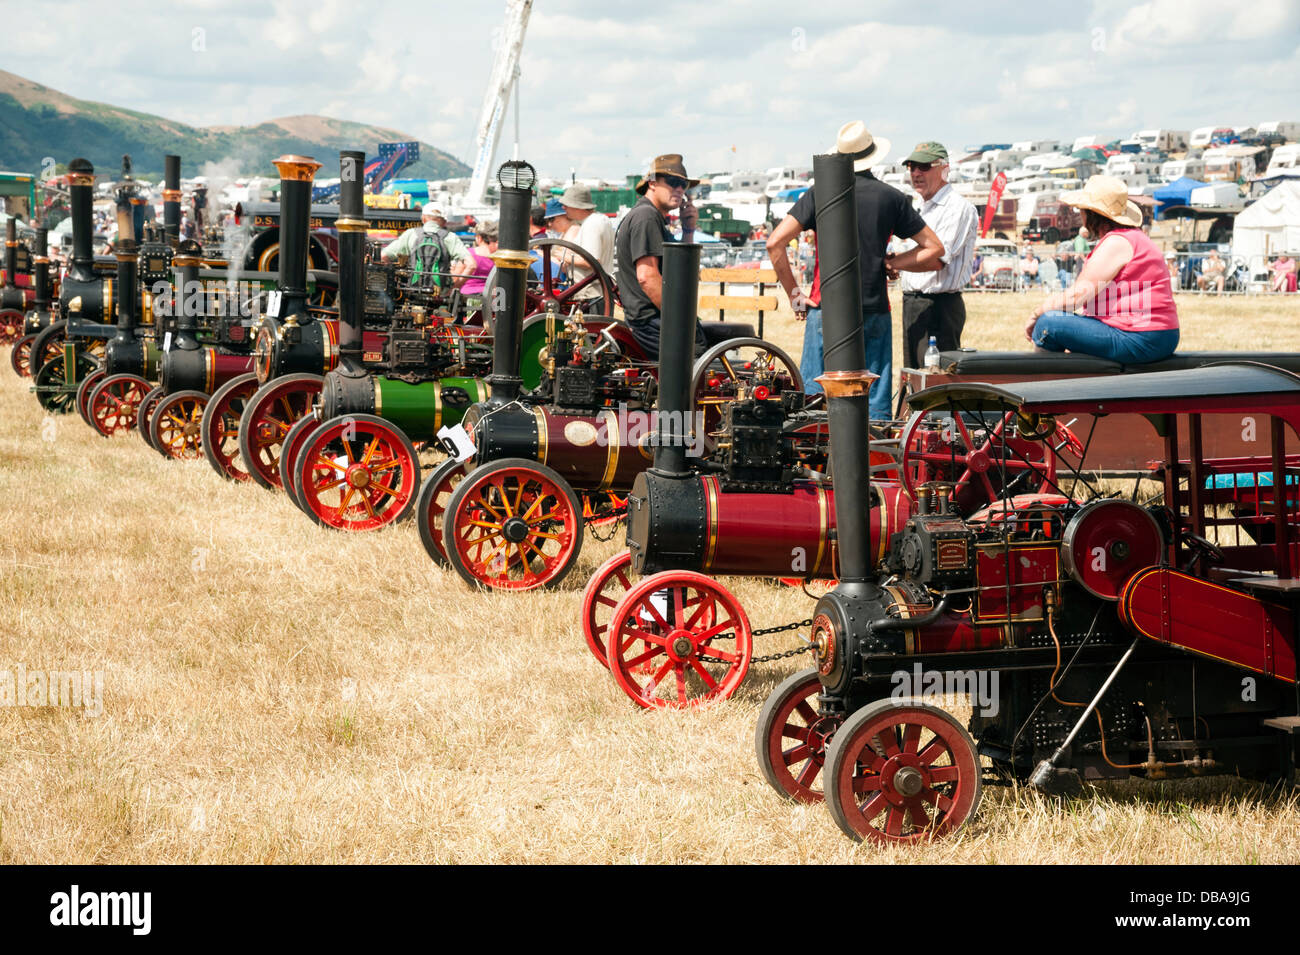 Line-up der Miniatur-Lokomobile am Welland Steam Rally, in der Nähe von den Malvern Hills, Worcestershire, Stockbild